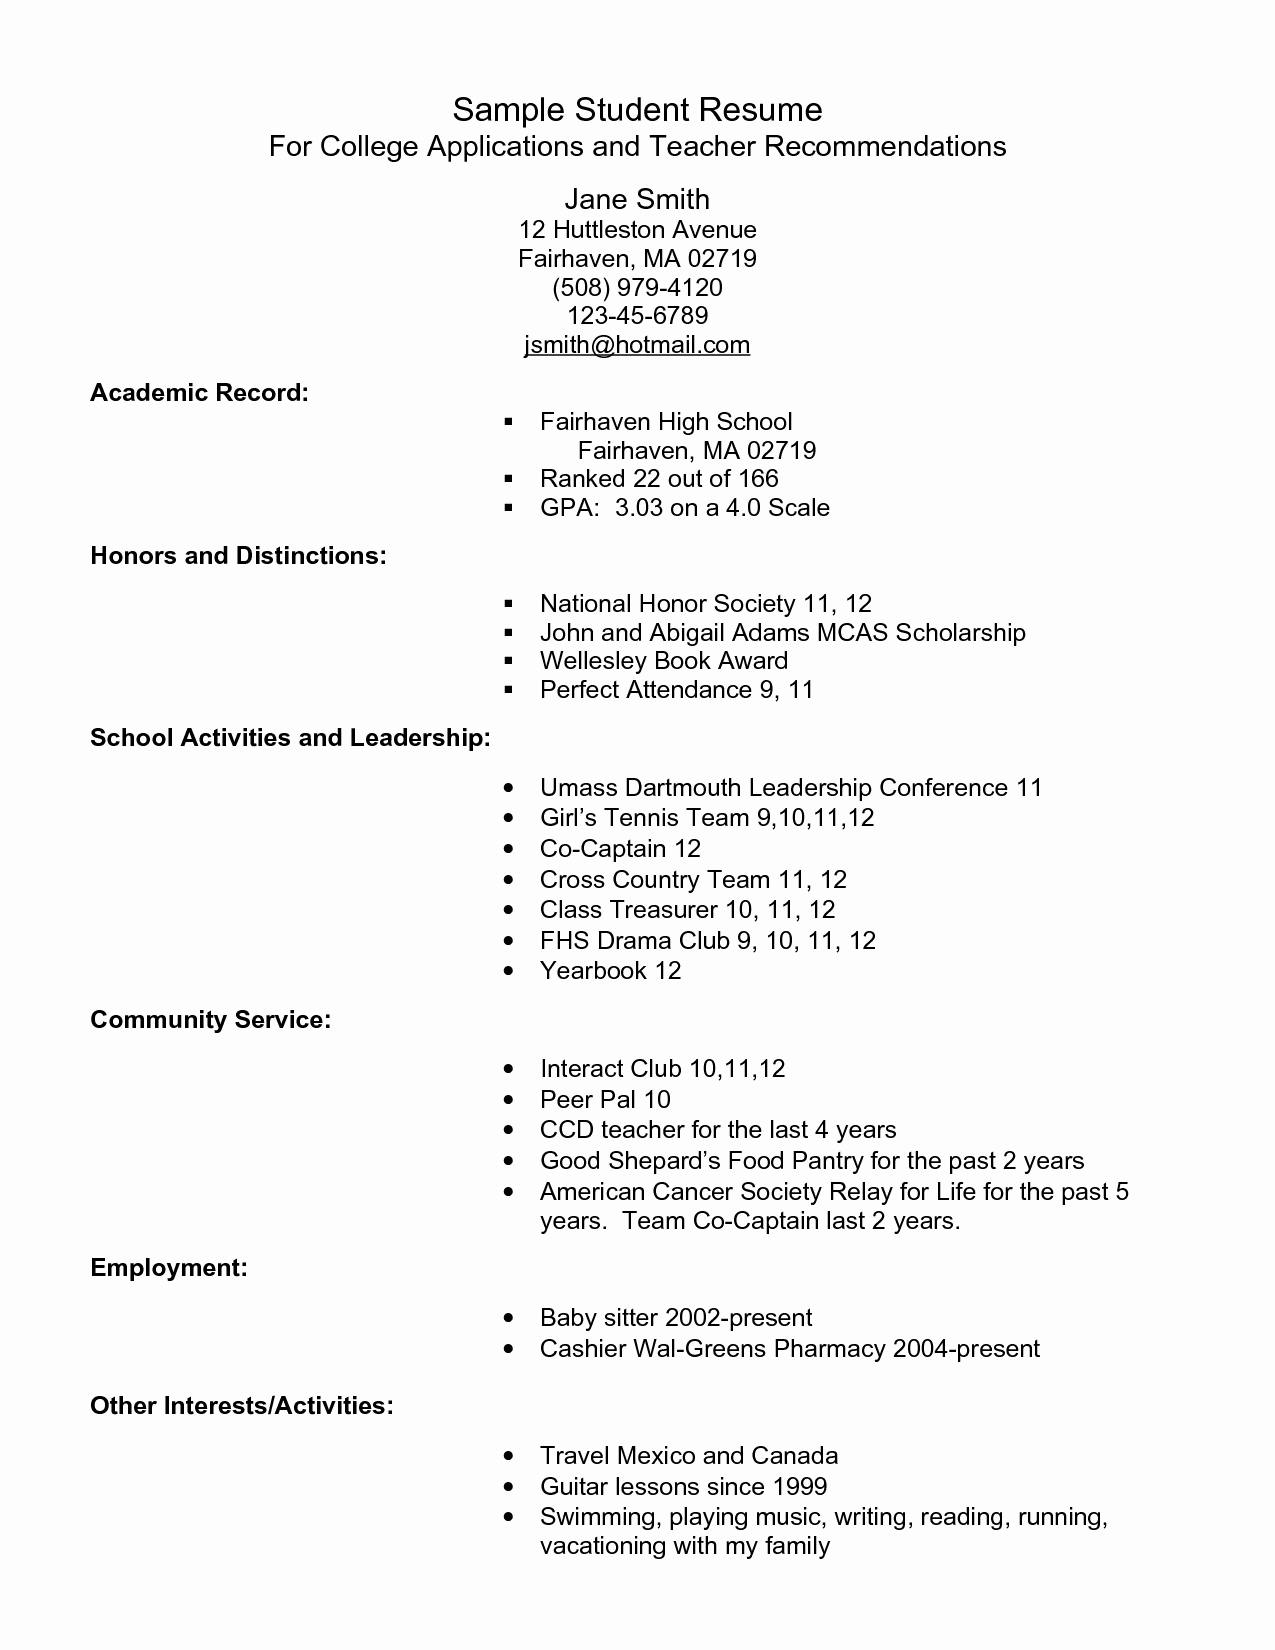 College Applicant Resume Template Lovely Example Resume for High School Students for College